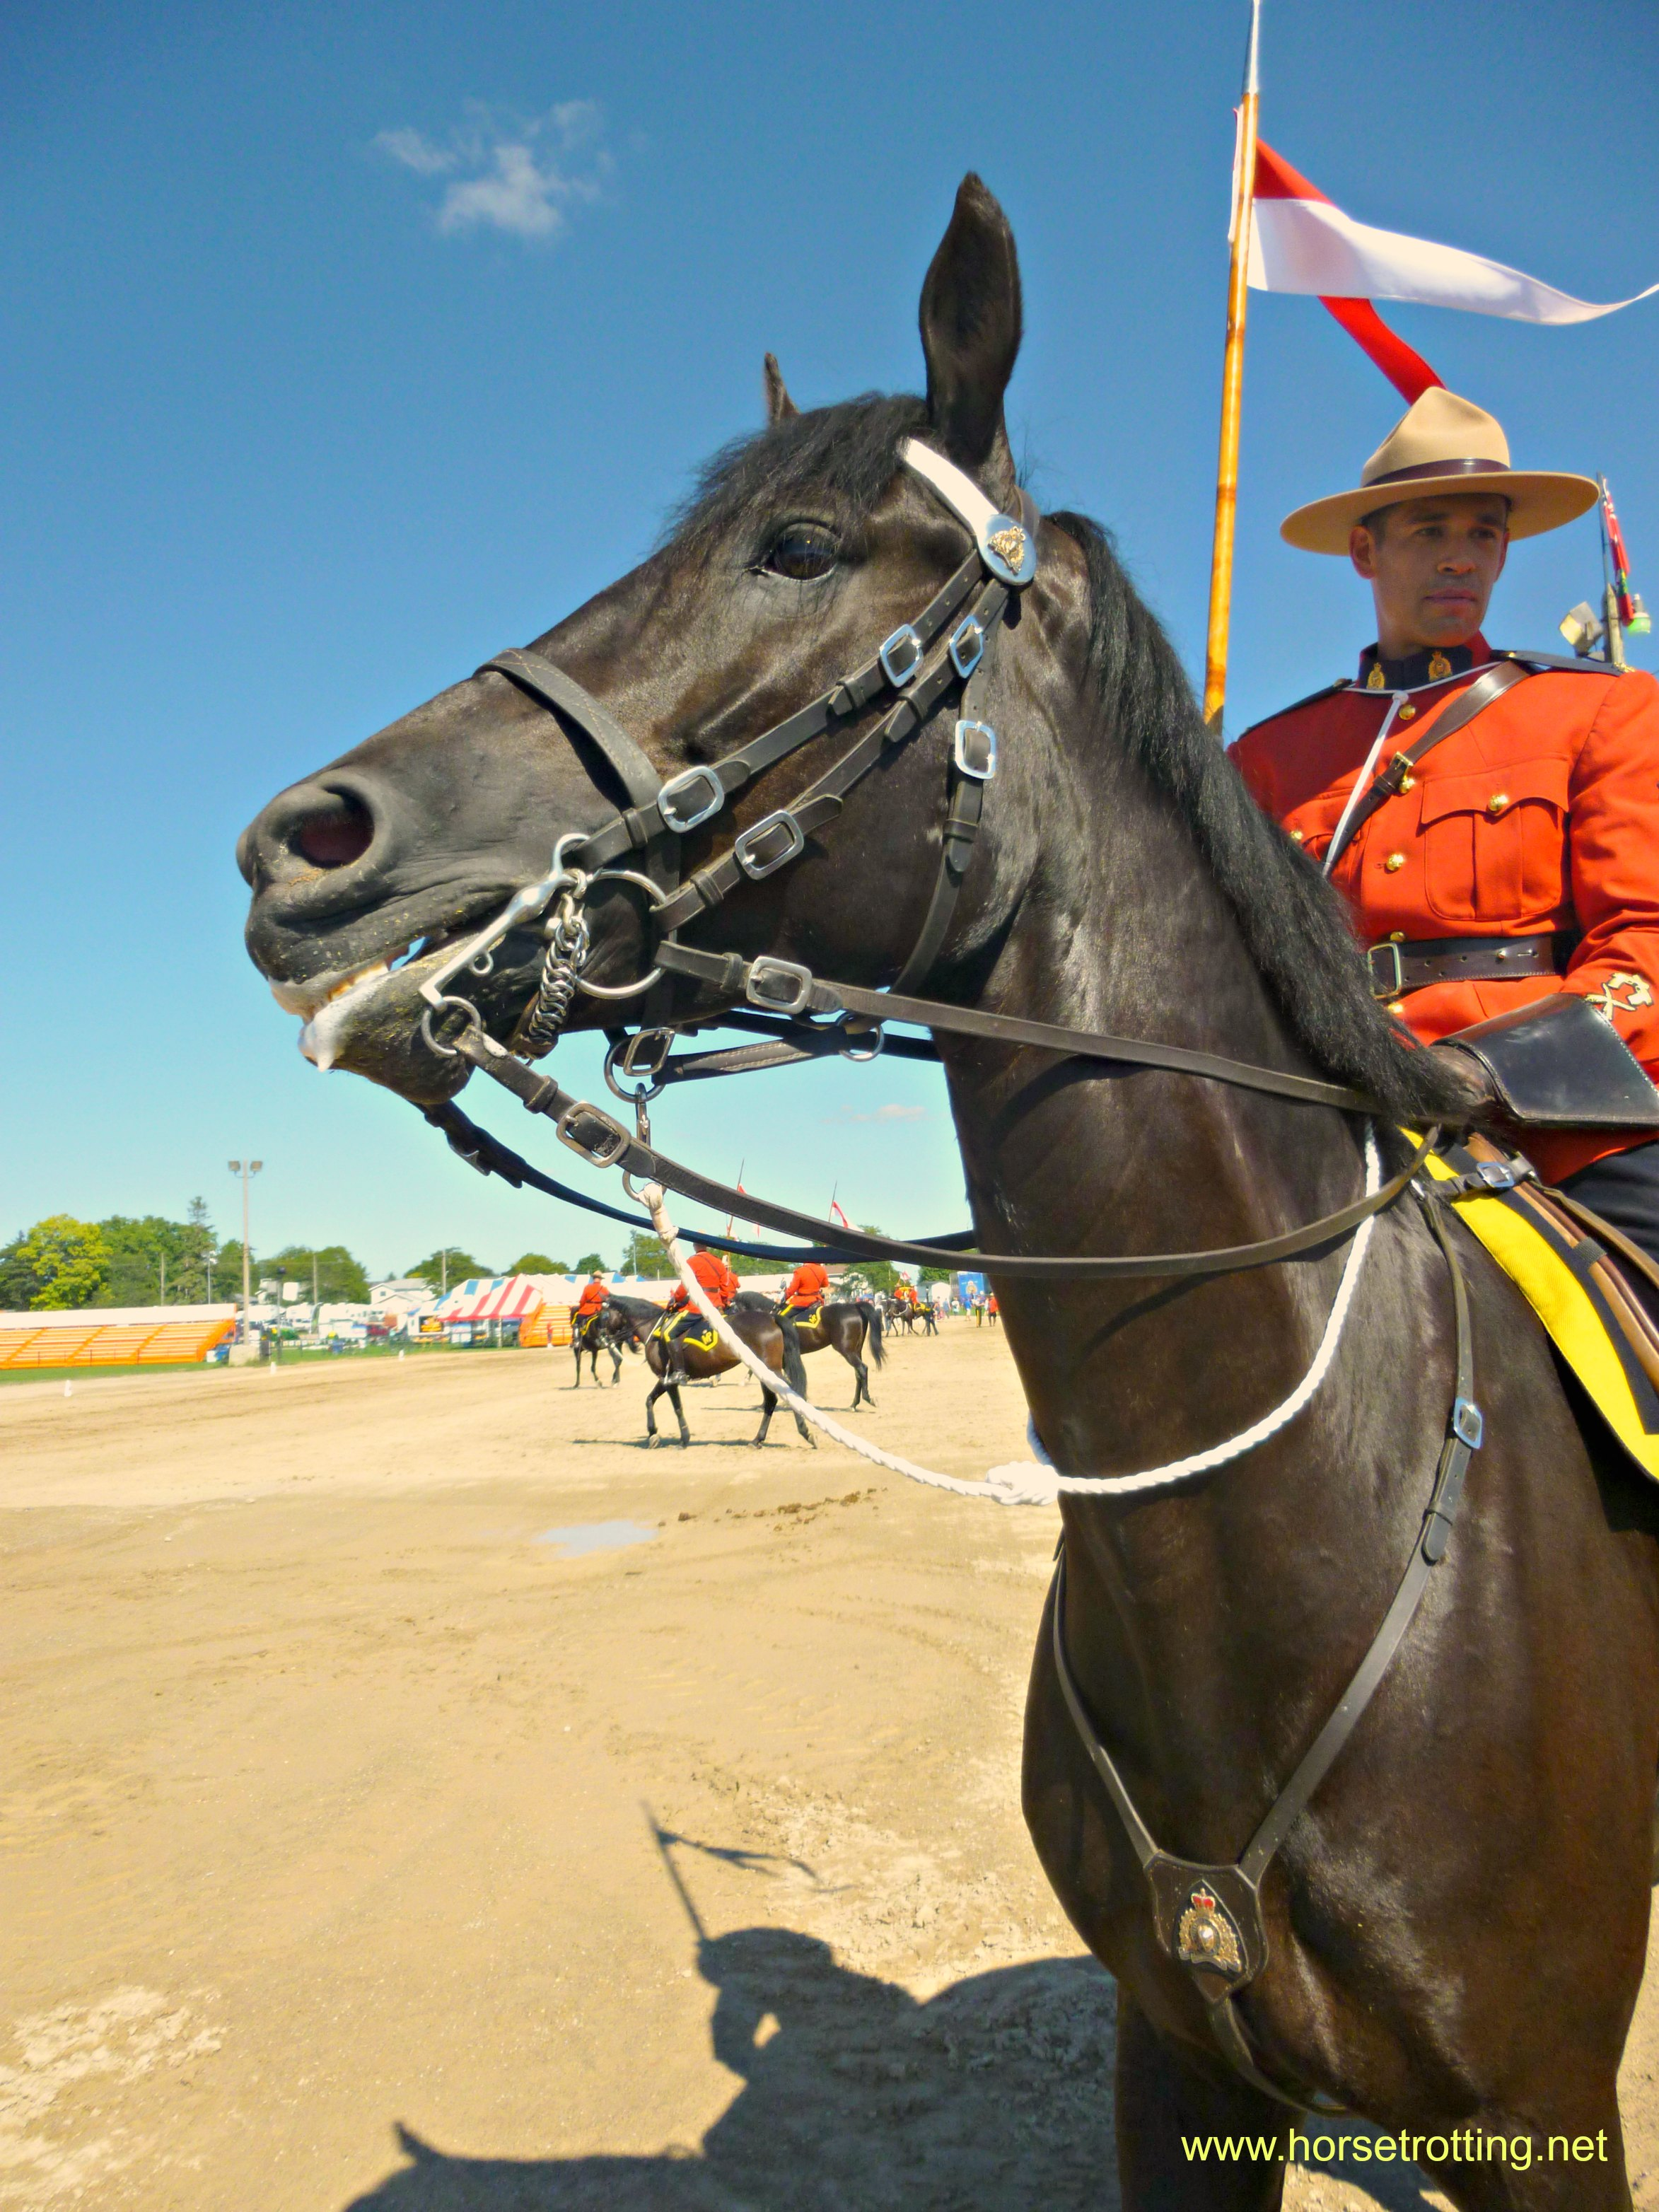 Southern Ontario Fall Fairs … with Horses. Gotta have horses.